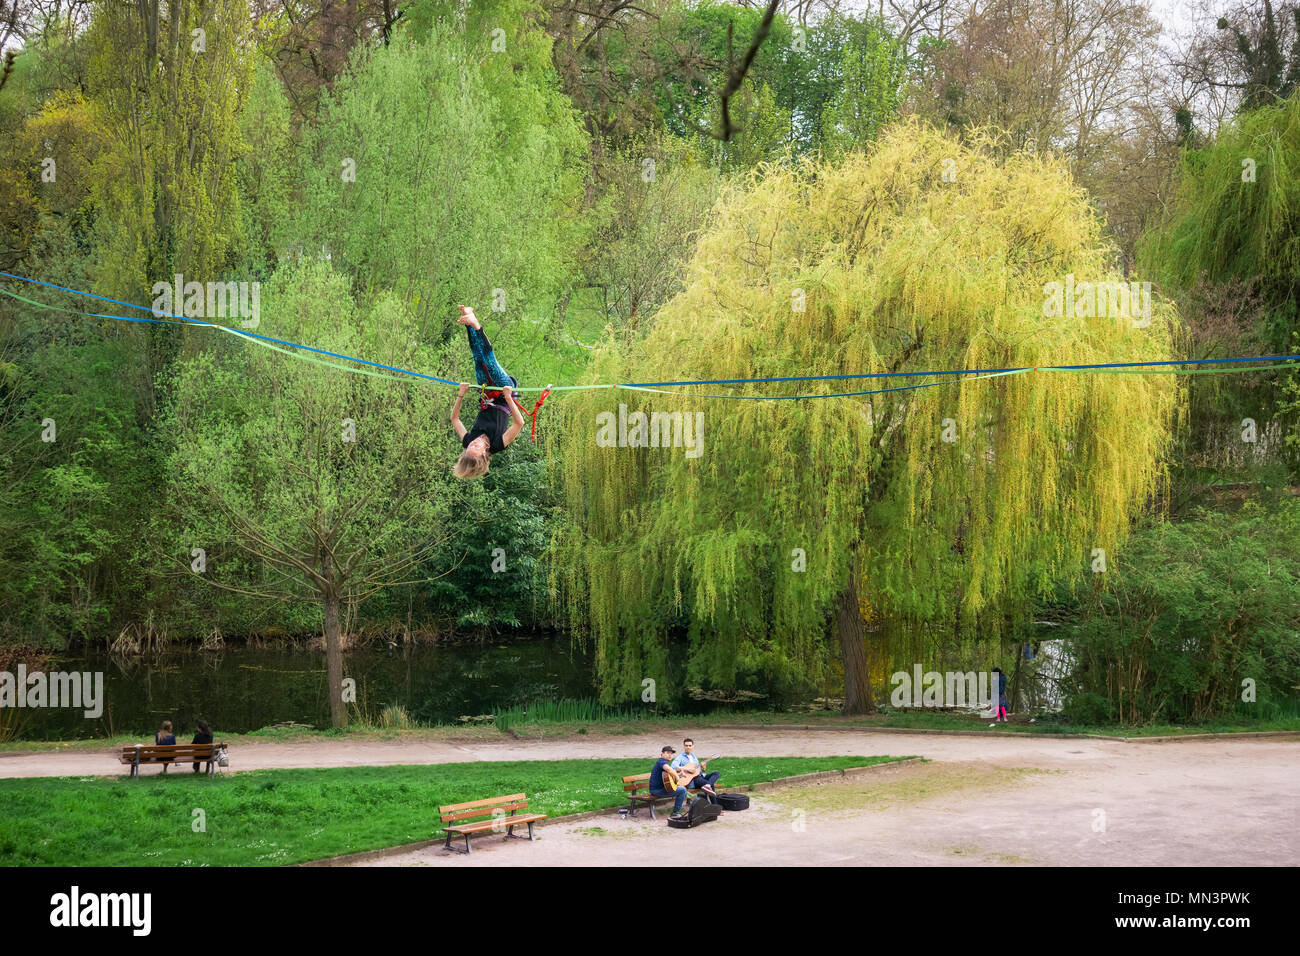 Young woman tightrope walker performing acrobatic tricks on a slackline in heights in a park, Strasbourg, France. - Stock Image